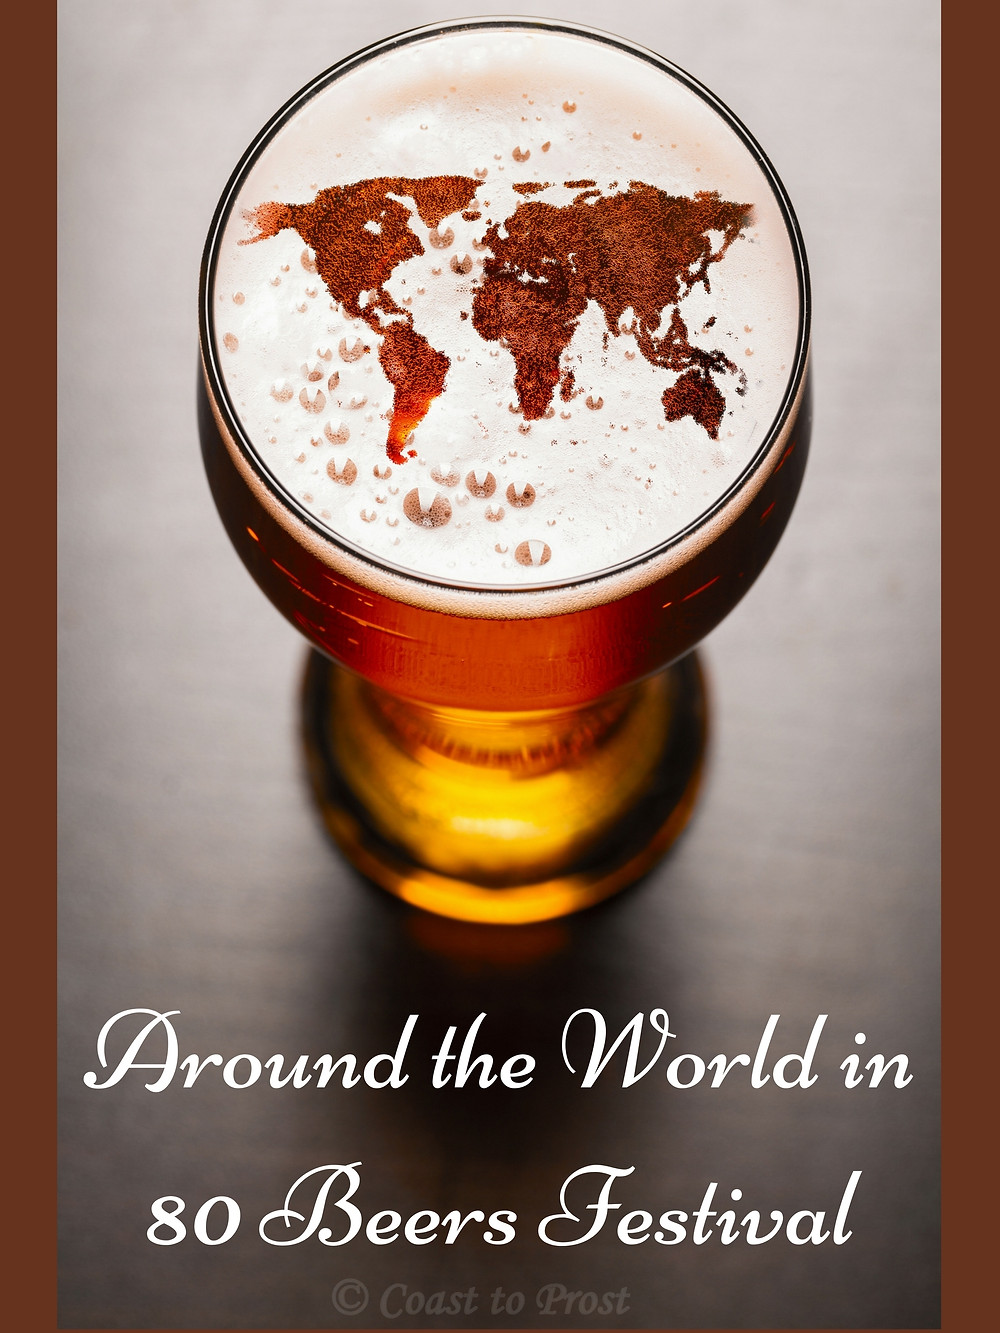 Around the World in 80 Beers festival poster pint glass with world map in beer foam